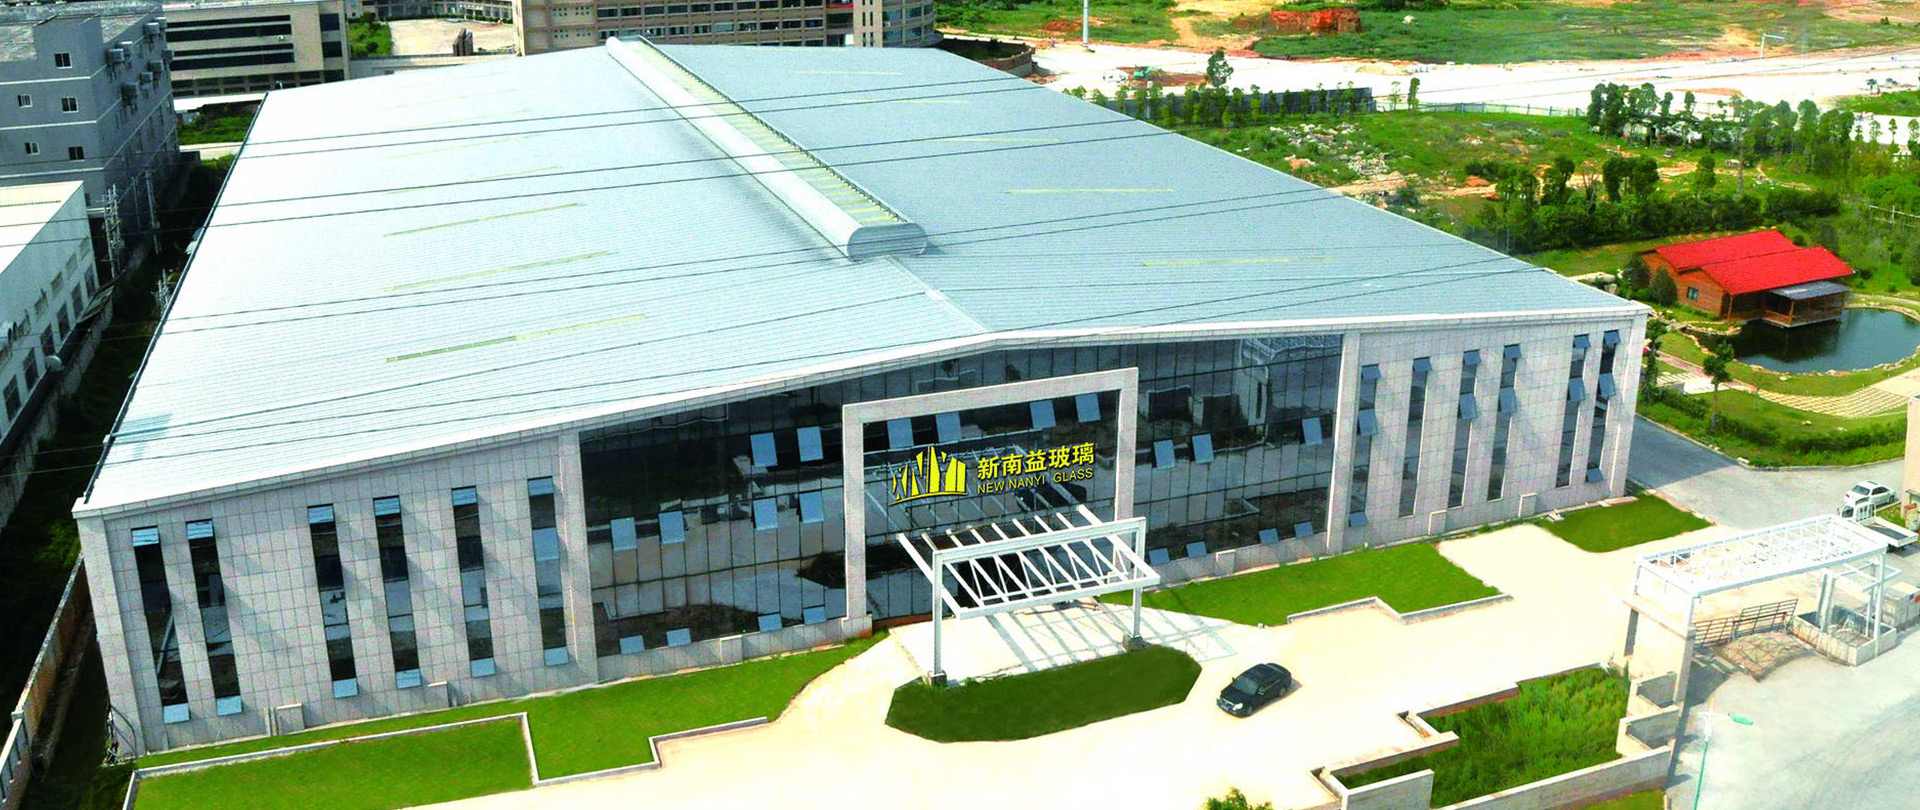 Jinjiang New Nanyi innovative glass co ltd.